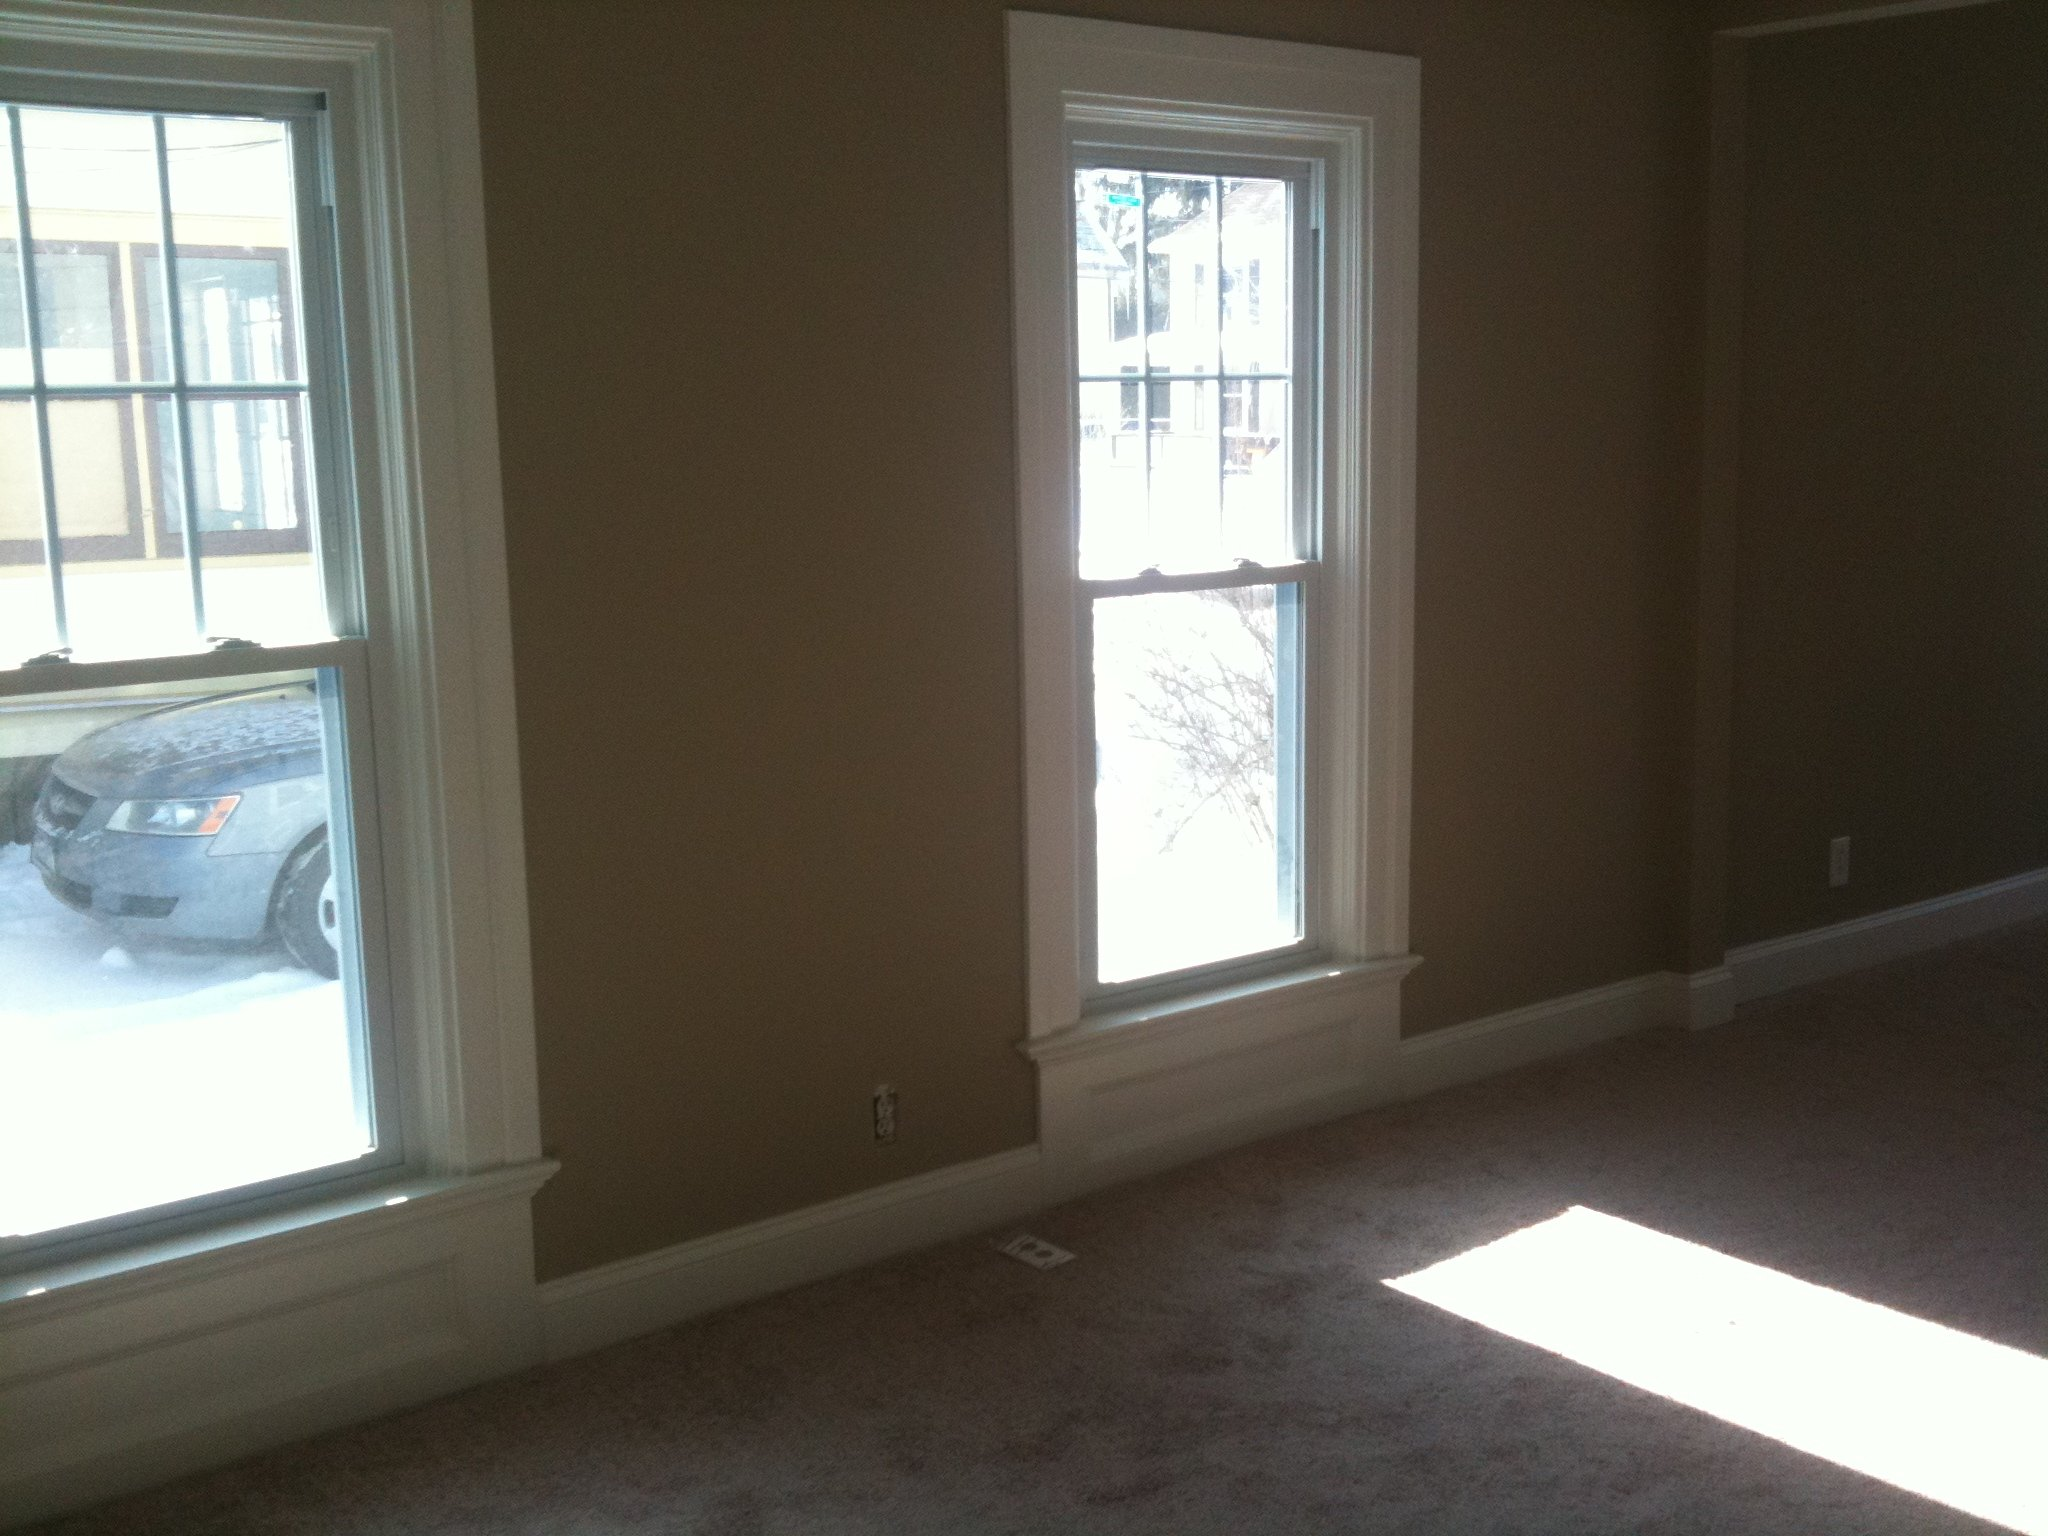 Neutral walls, white trim